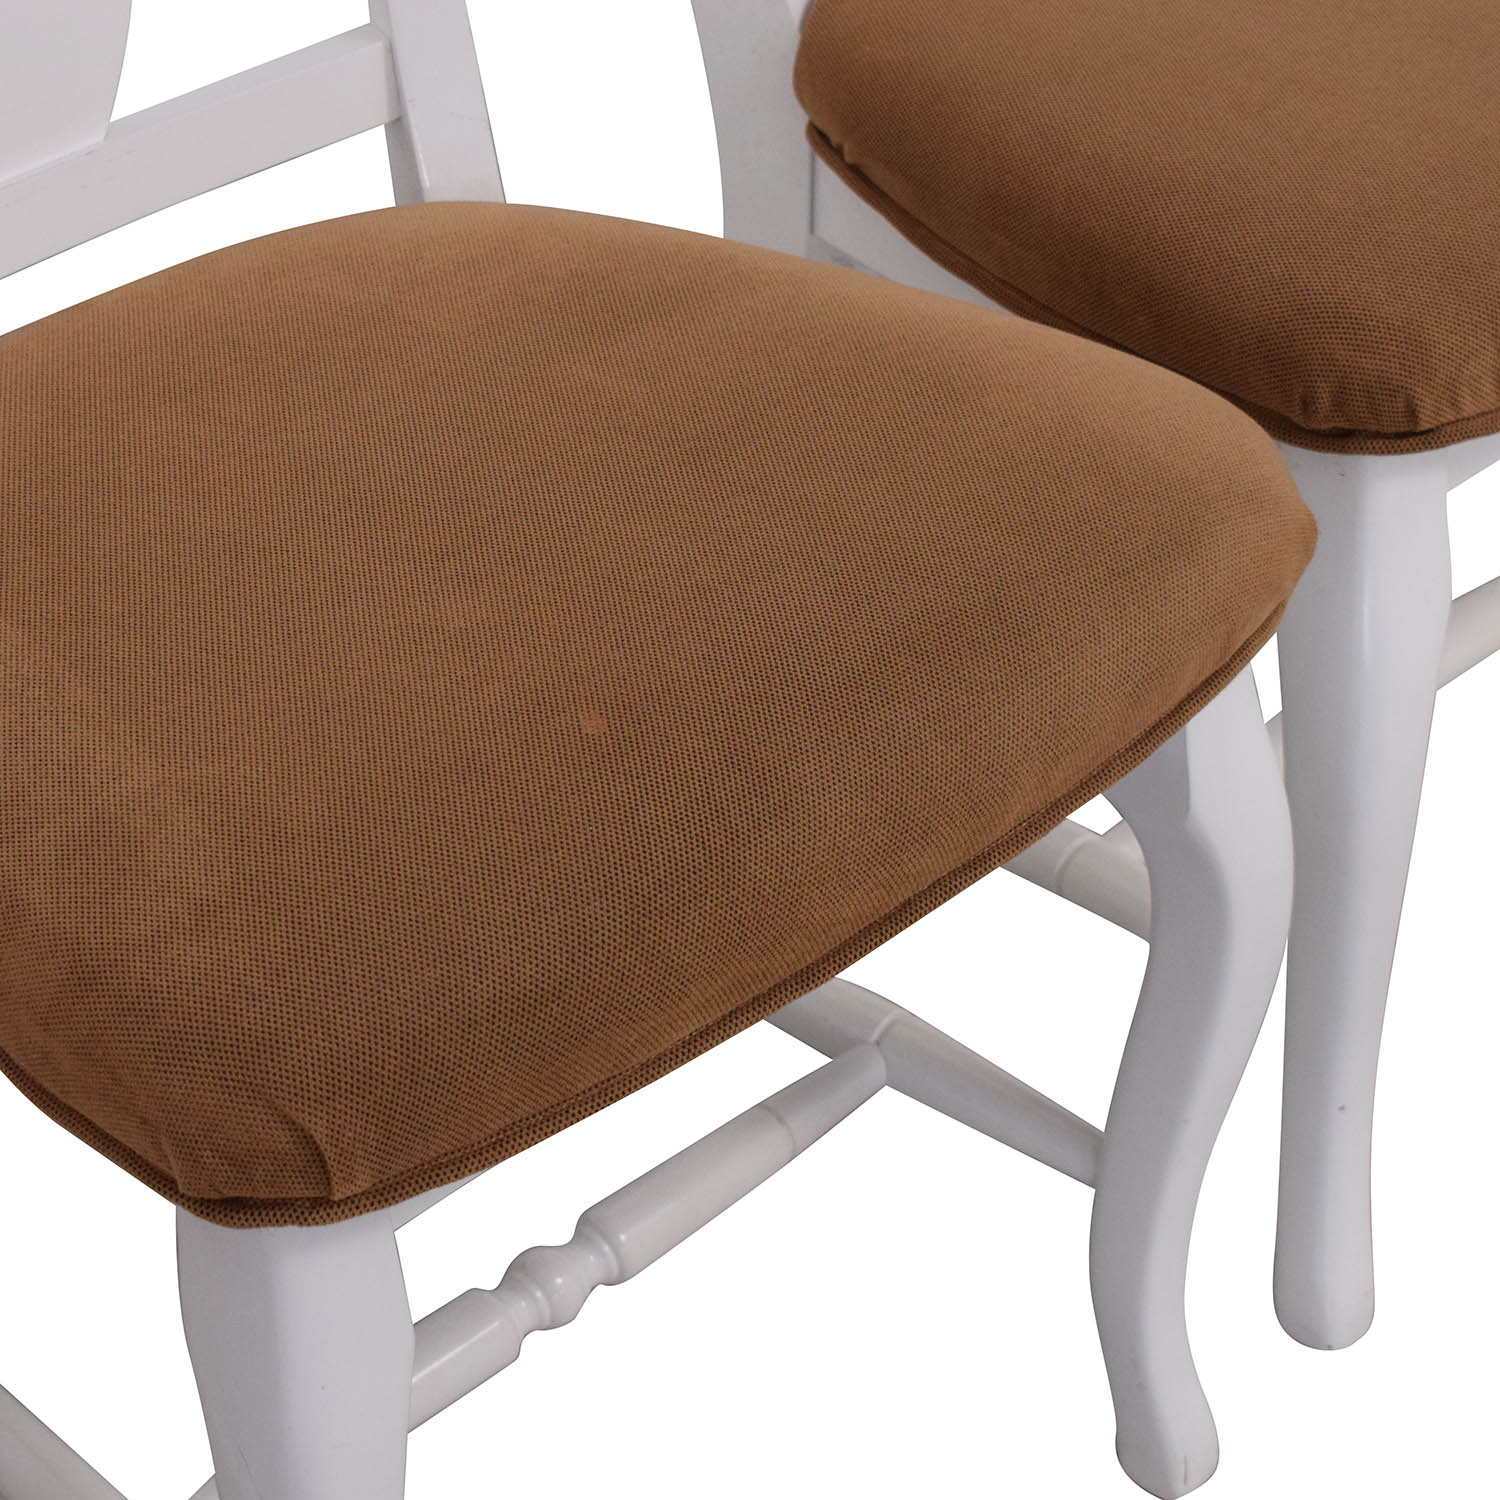 Canadel Canadel Upholstered Dining Chairs ct